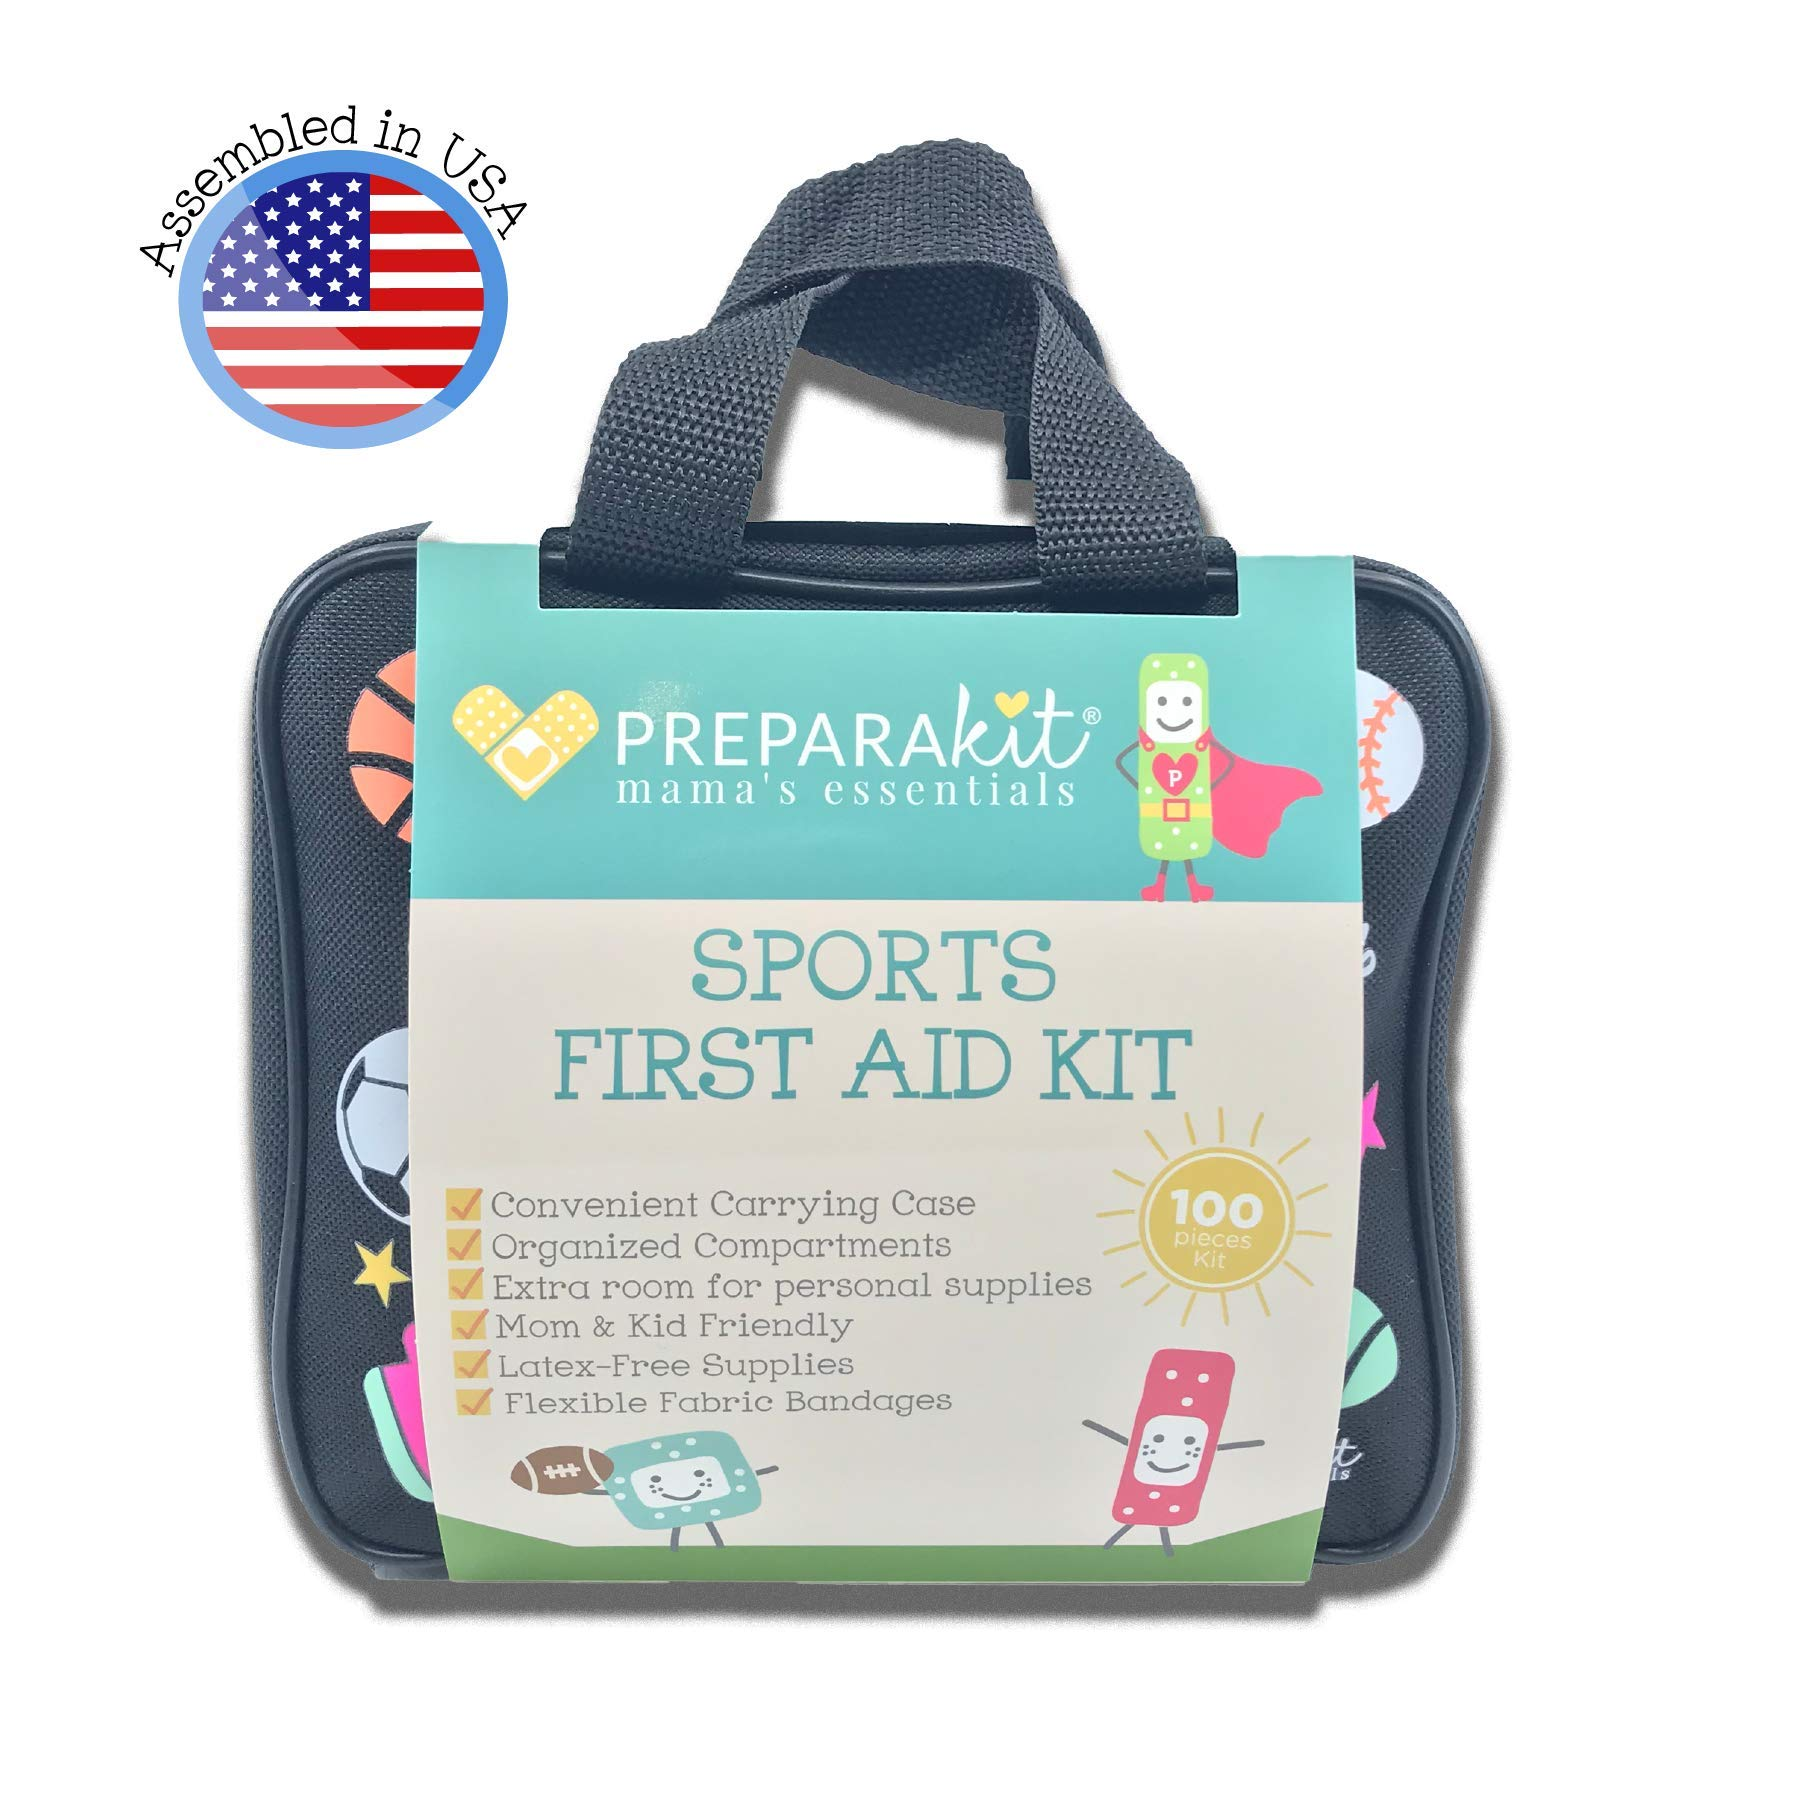 PreparaKit Sports First Aid Kit - Mom First Aid Kits! Complete Kit with 100 Essential Supplies - Large First Aid Kit for Kids Sports, Travel, Emergency, Camping, Hiking, Car, or Home by PreparaKit